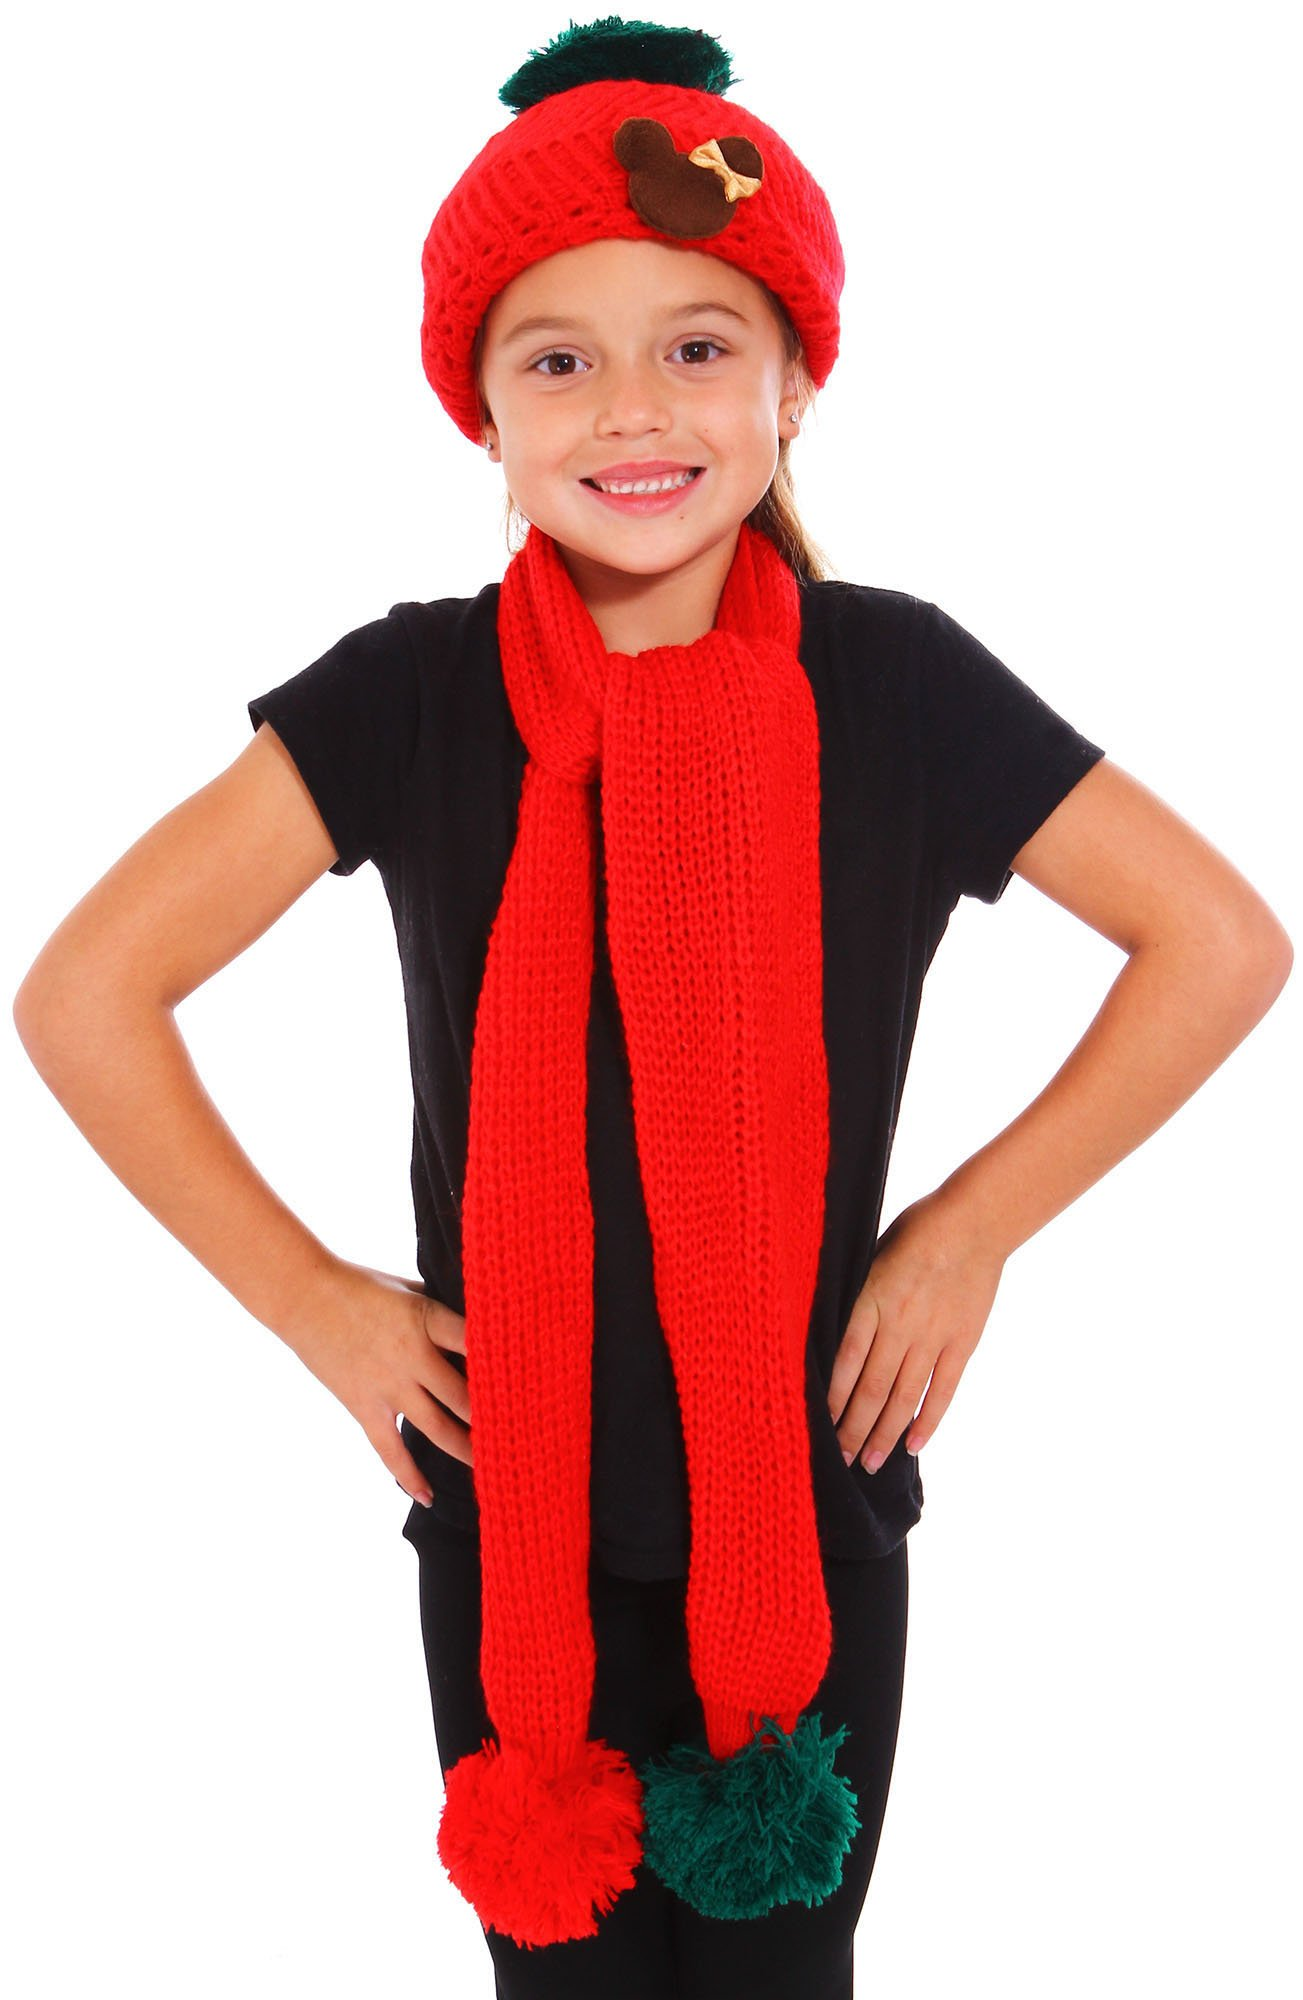 Simplicity Kids Hat Knitted Crochet 2 Pieces Beanie Cap Scarf Set, Red